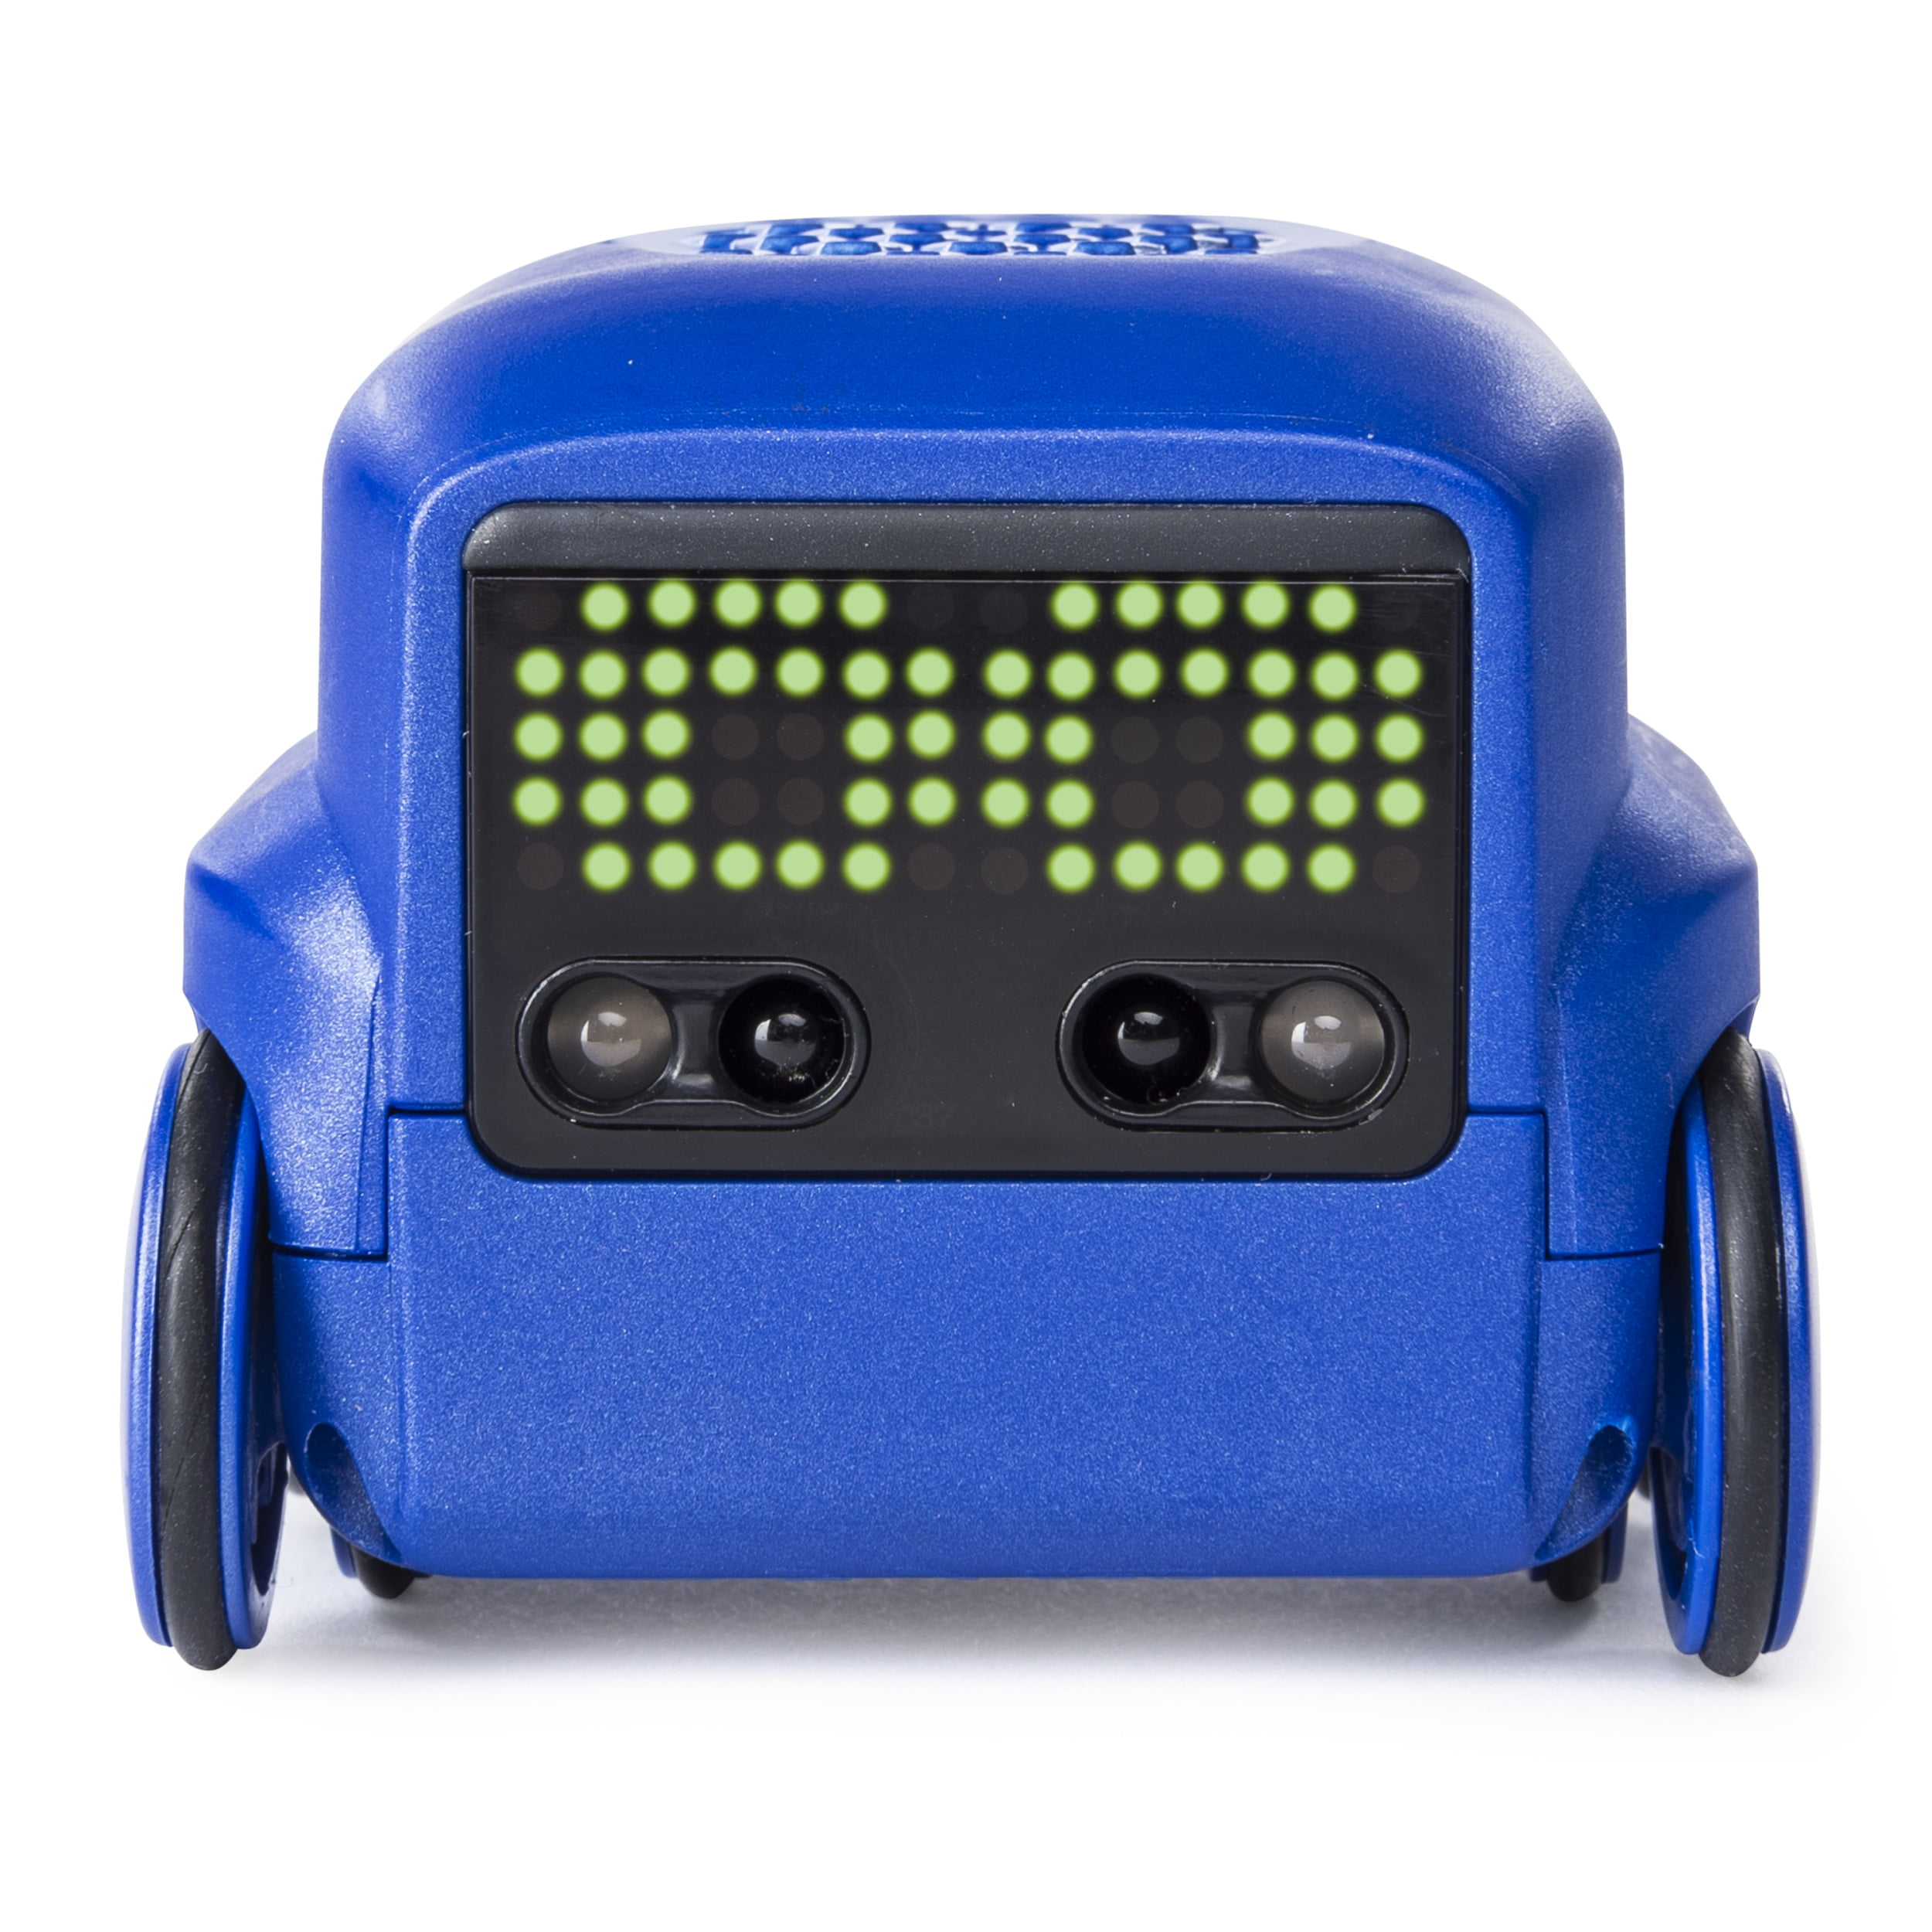 Boxer Interactive A.I. Robot Toy (Blue) with Personality and Emotions, for Ages 6 and Up by Spin Master Ltd